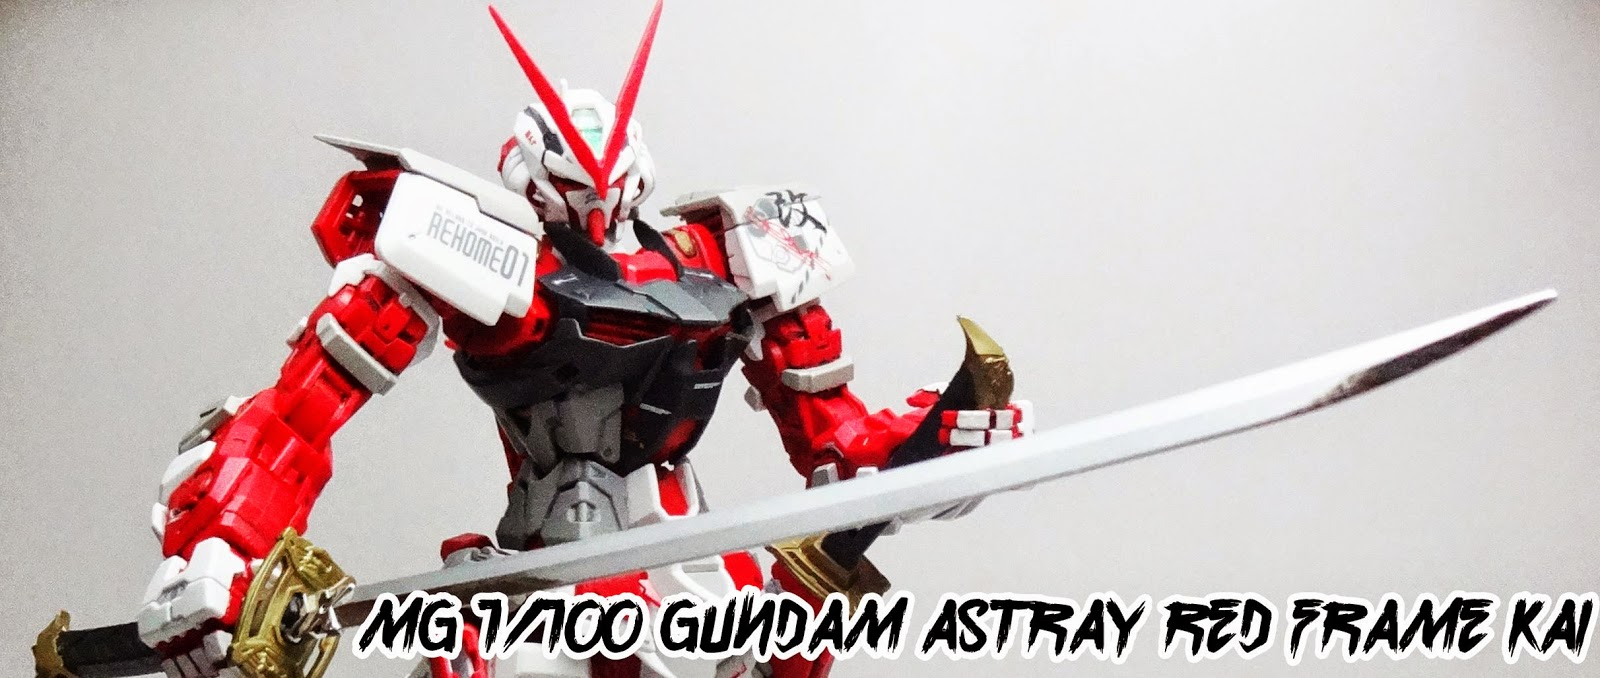 http://berryxx.blogspot.com/2014/04/review-mg-1100-gundam-astray-red-frame.html